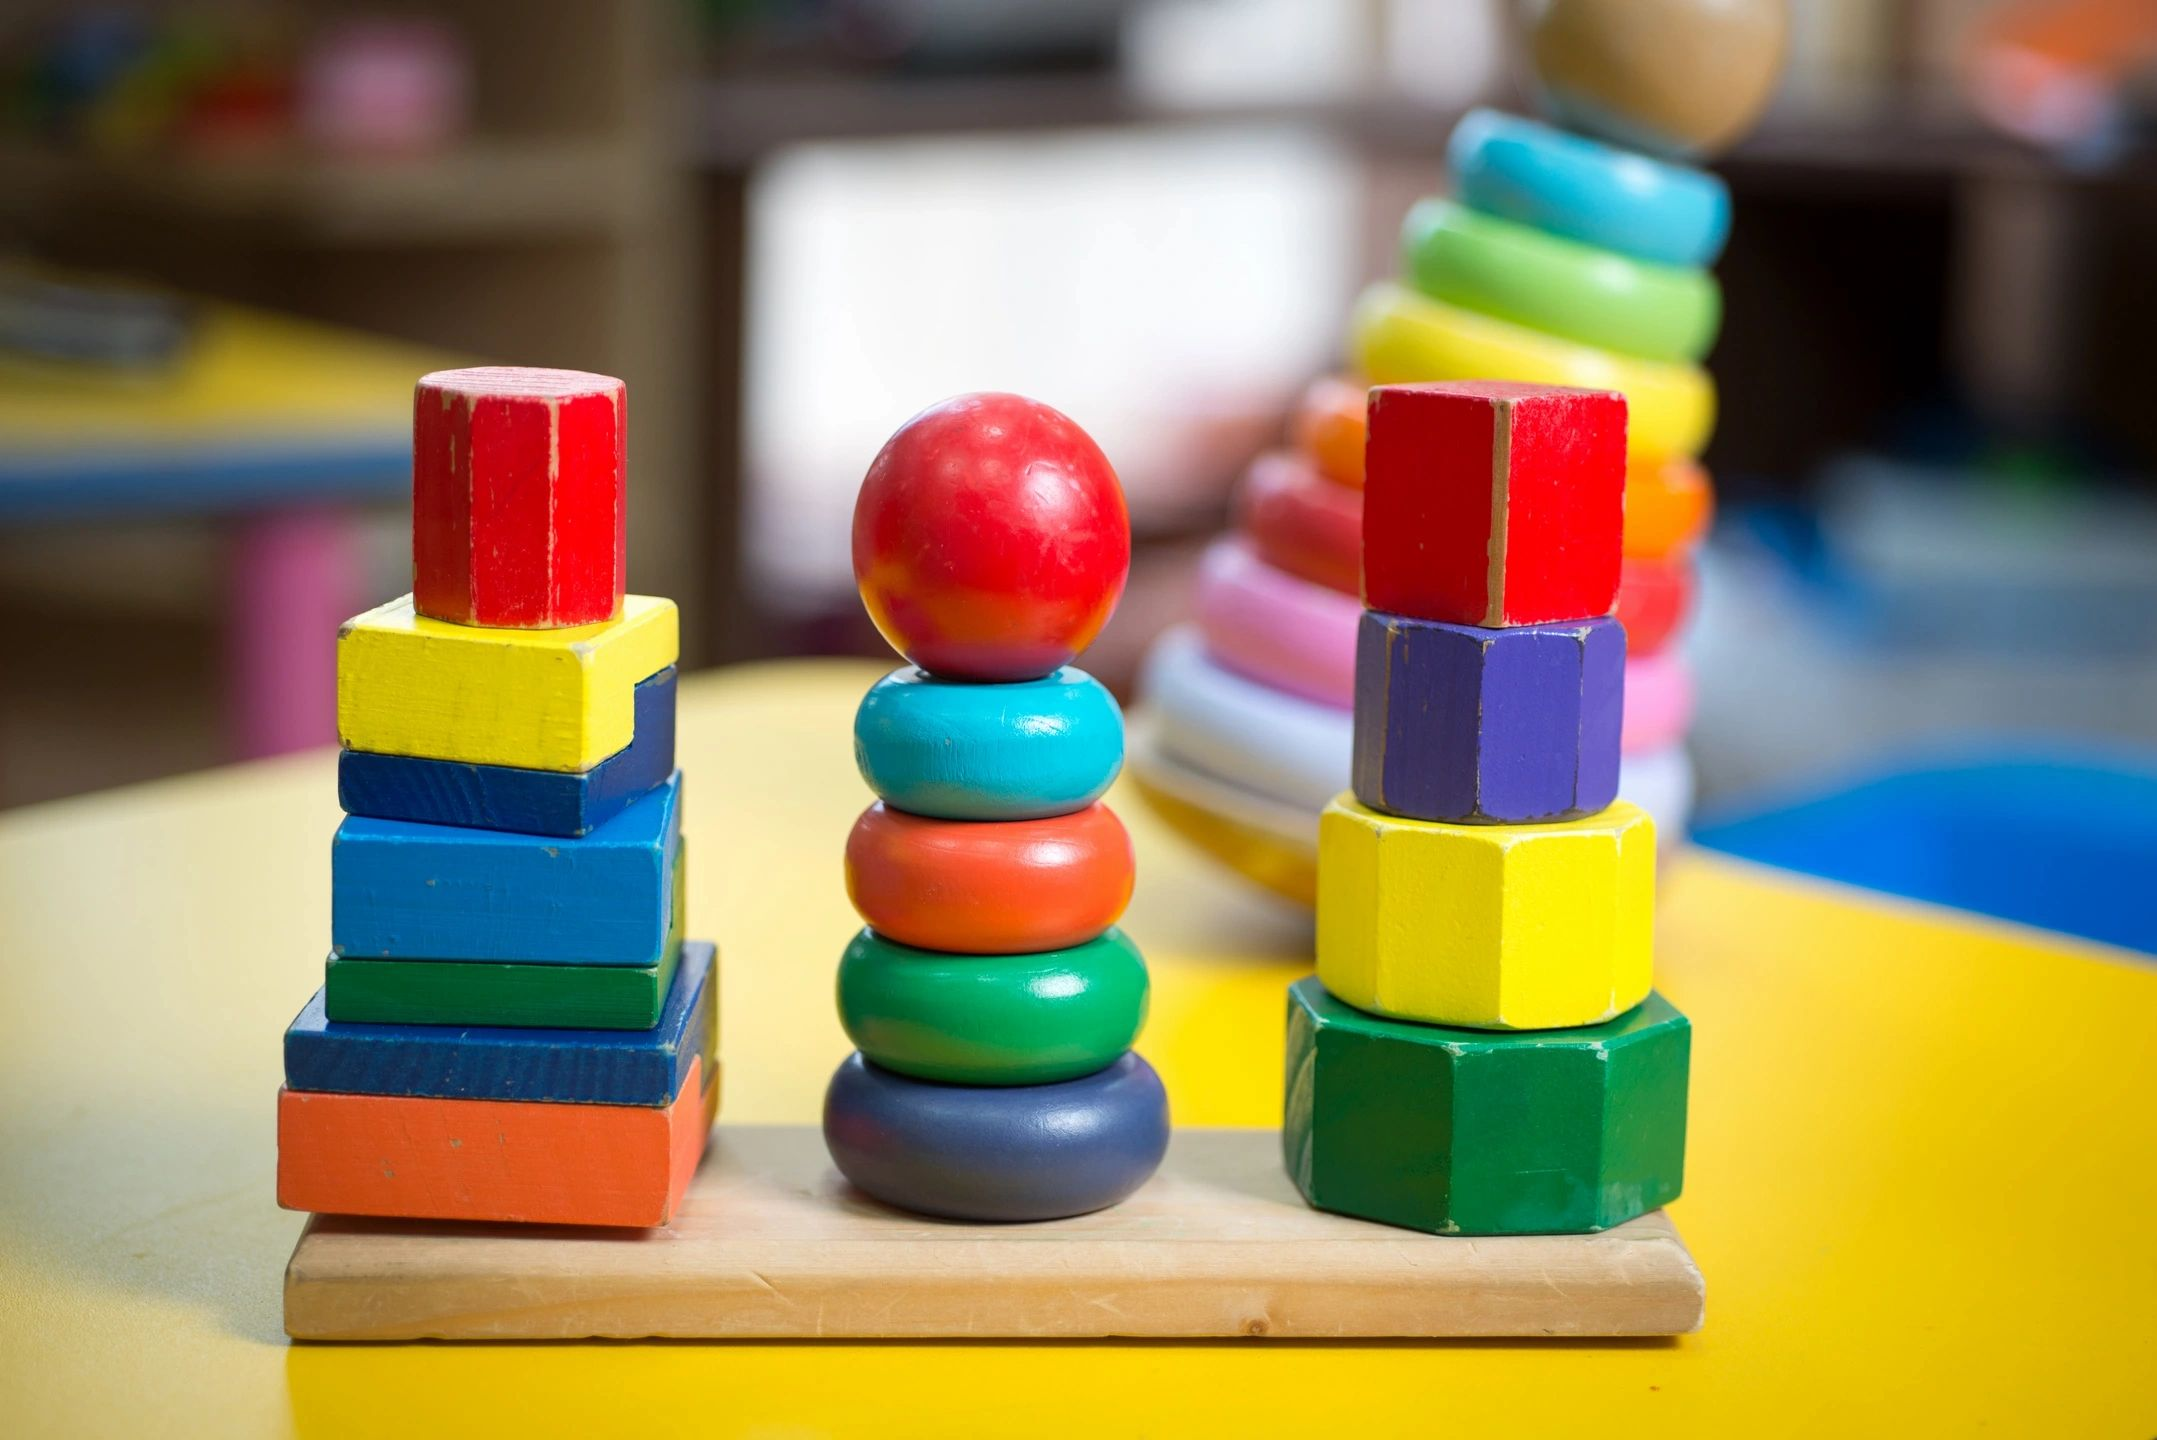 Problem solving toys at Chiswell Preschool and Nursery in St Albans